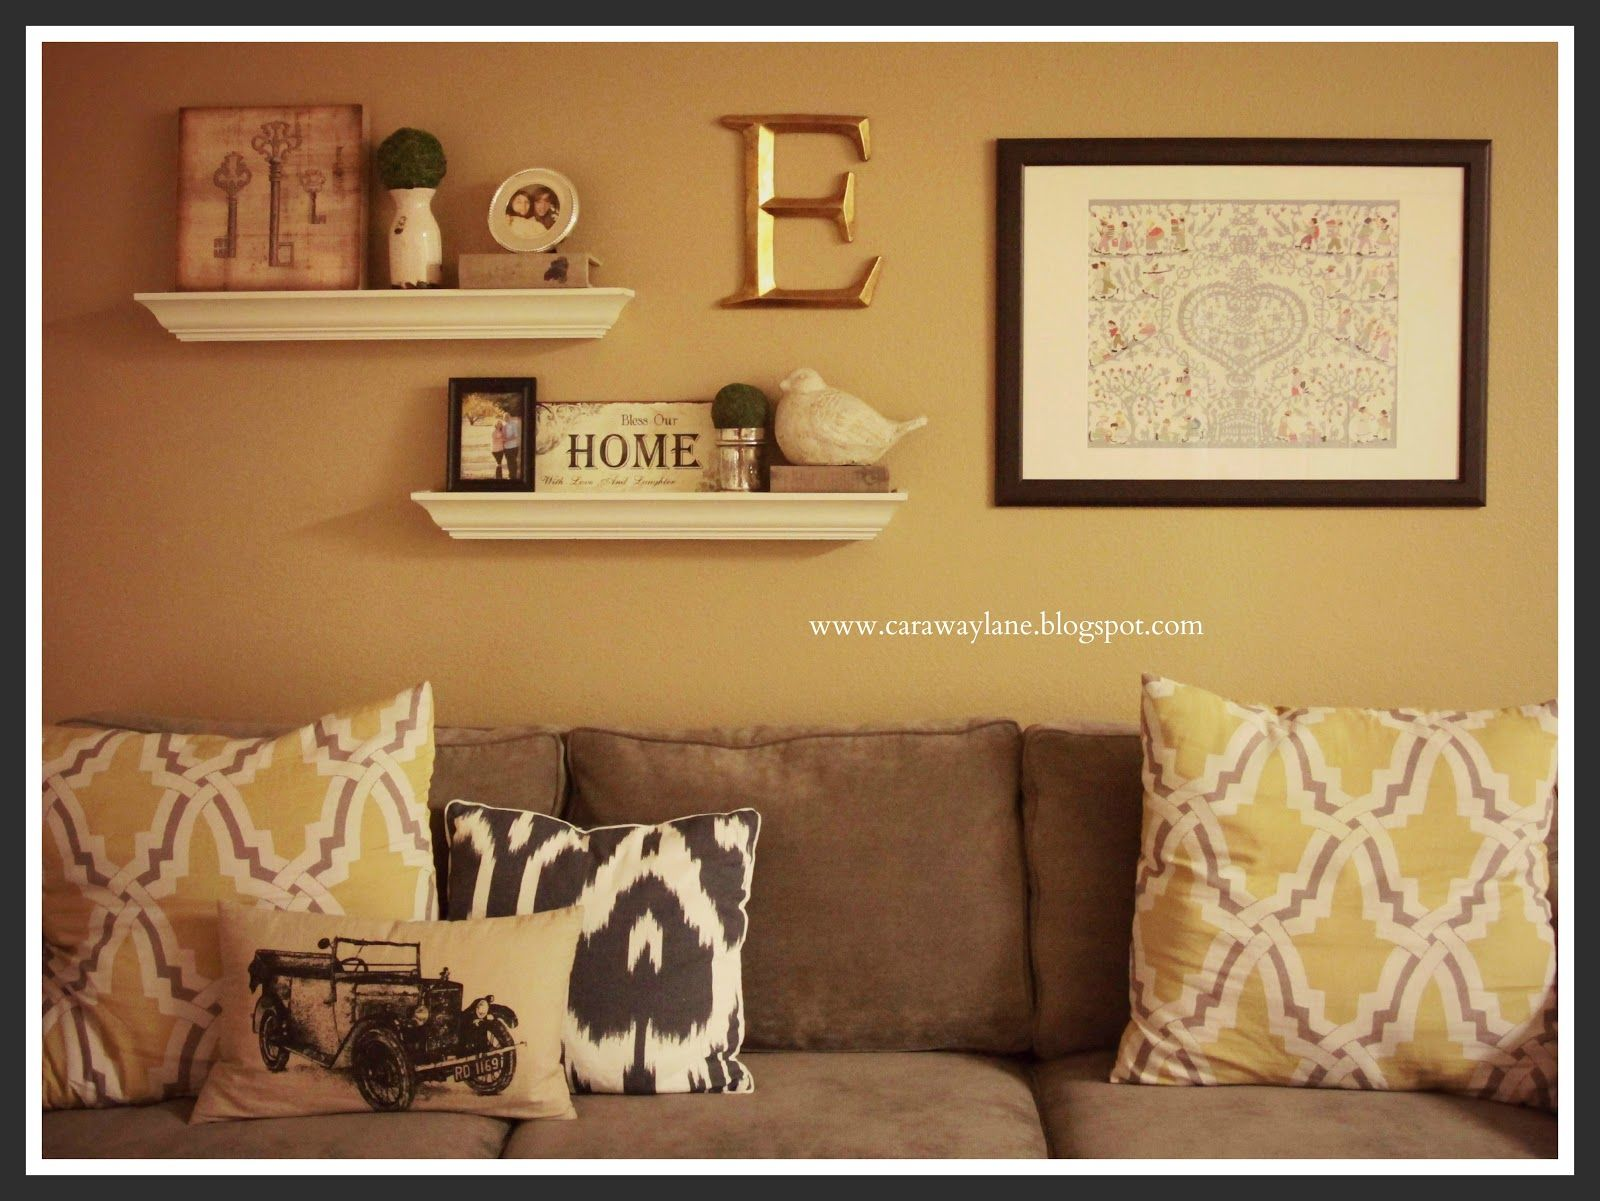 Decorate over a sofa above the couch wall decor homes decorate over a sofa above the couch wall decor amipublicfo Image collections